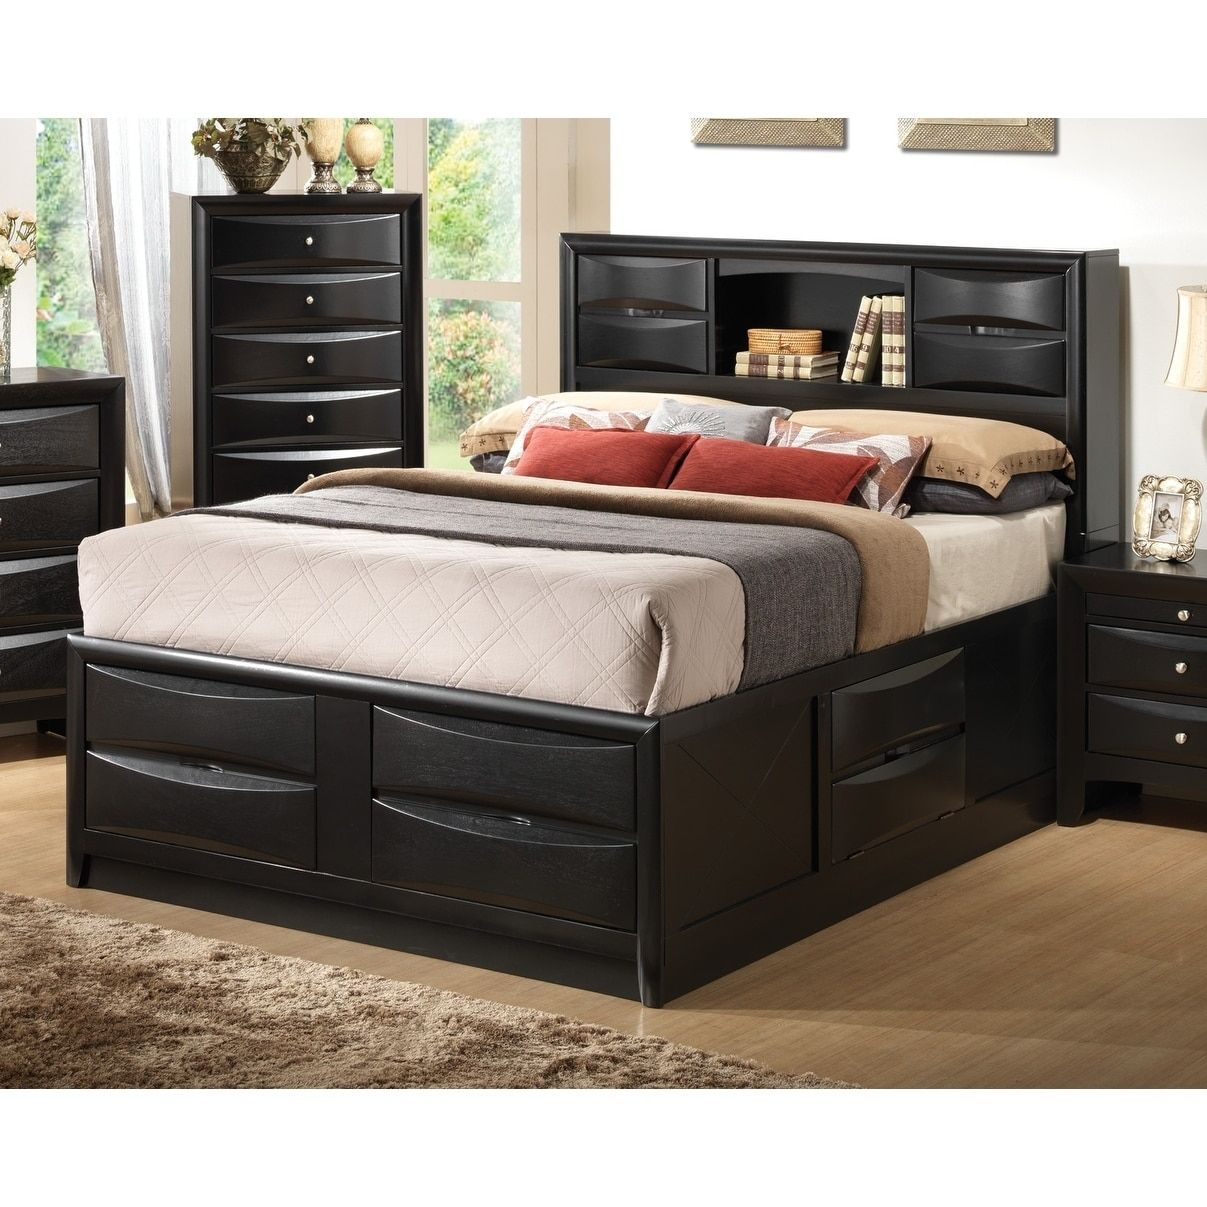 Jazz Black Storage Bed Queen Bed Frame With Drawers Bed Frame